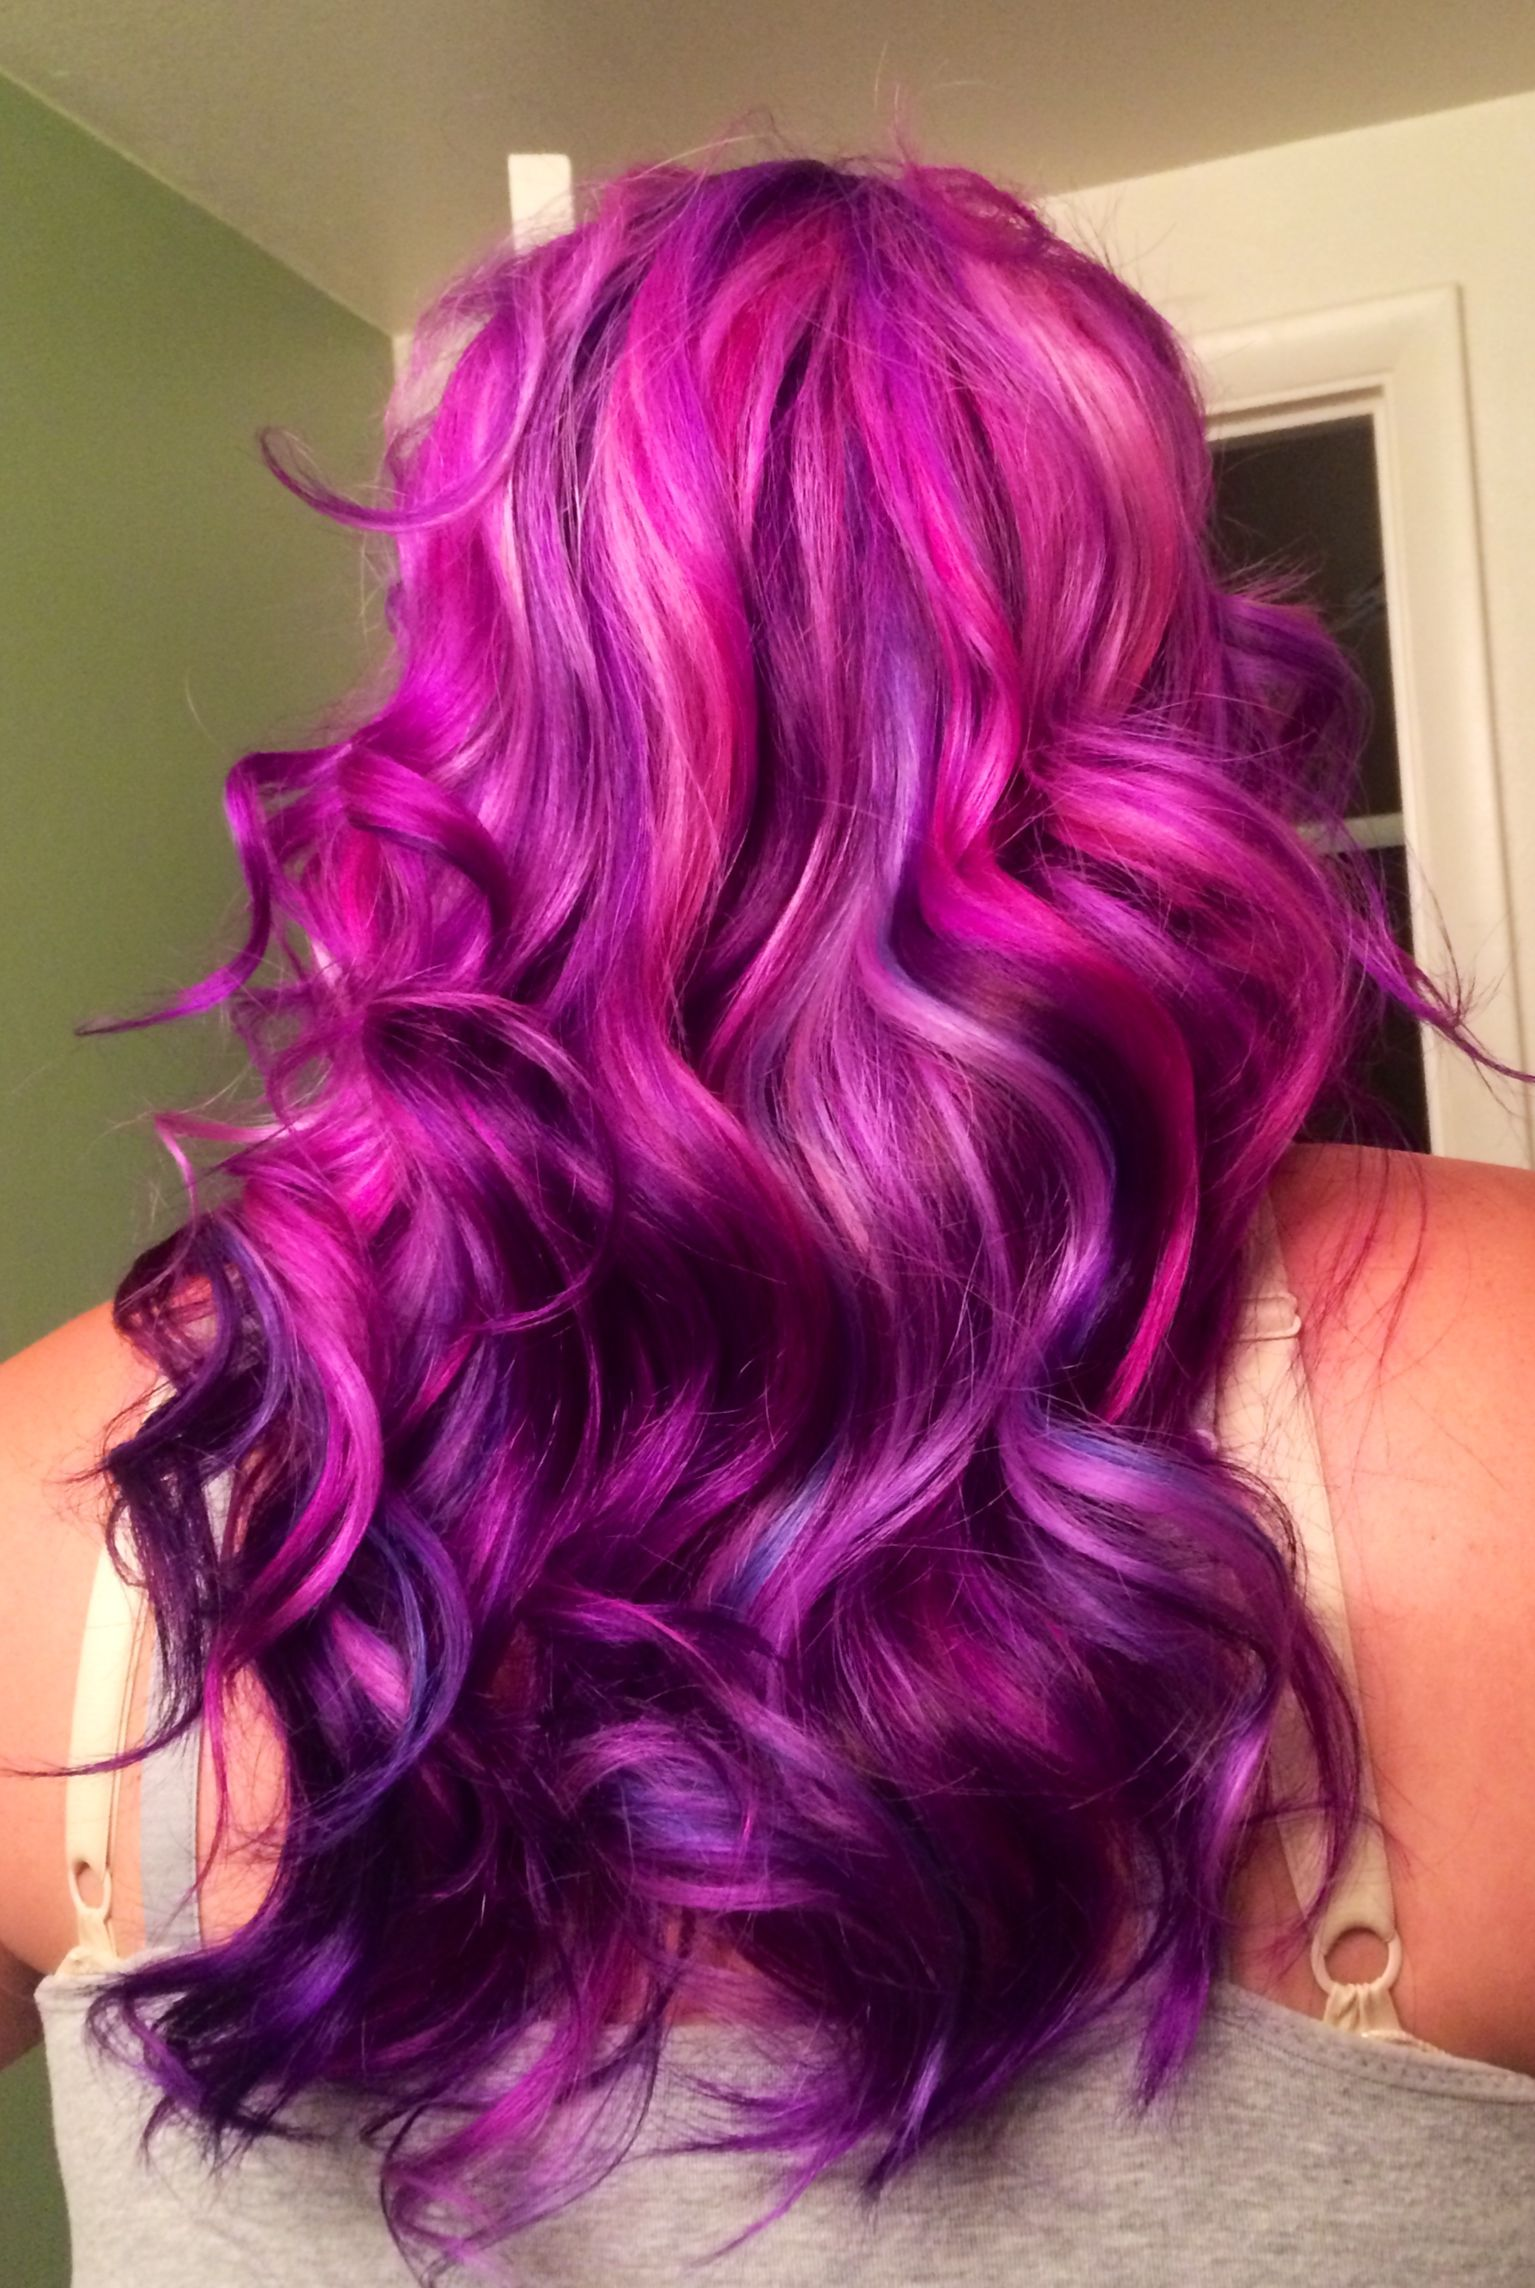 Hair Color Purple Plum Eggplant On Pinterest 50 Pins